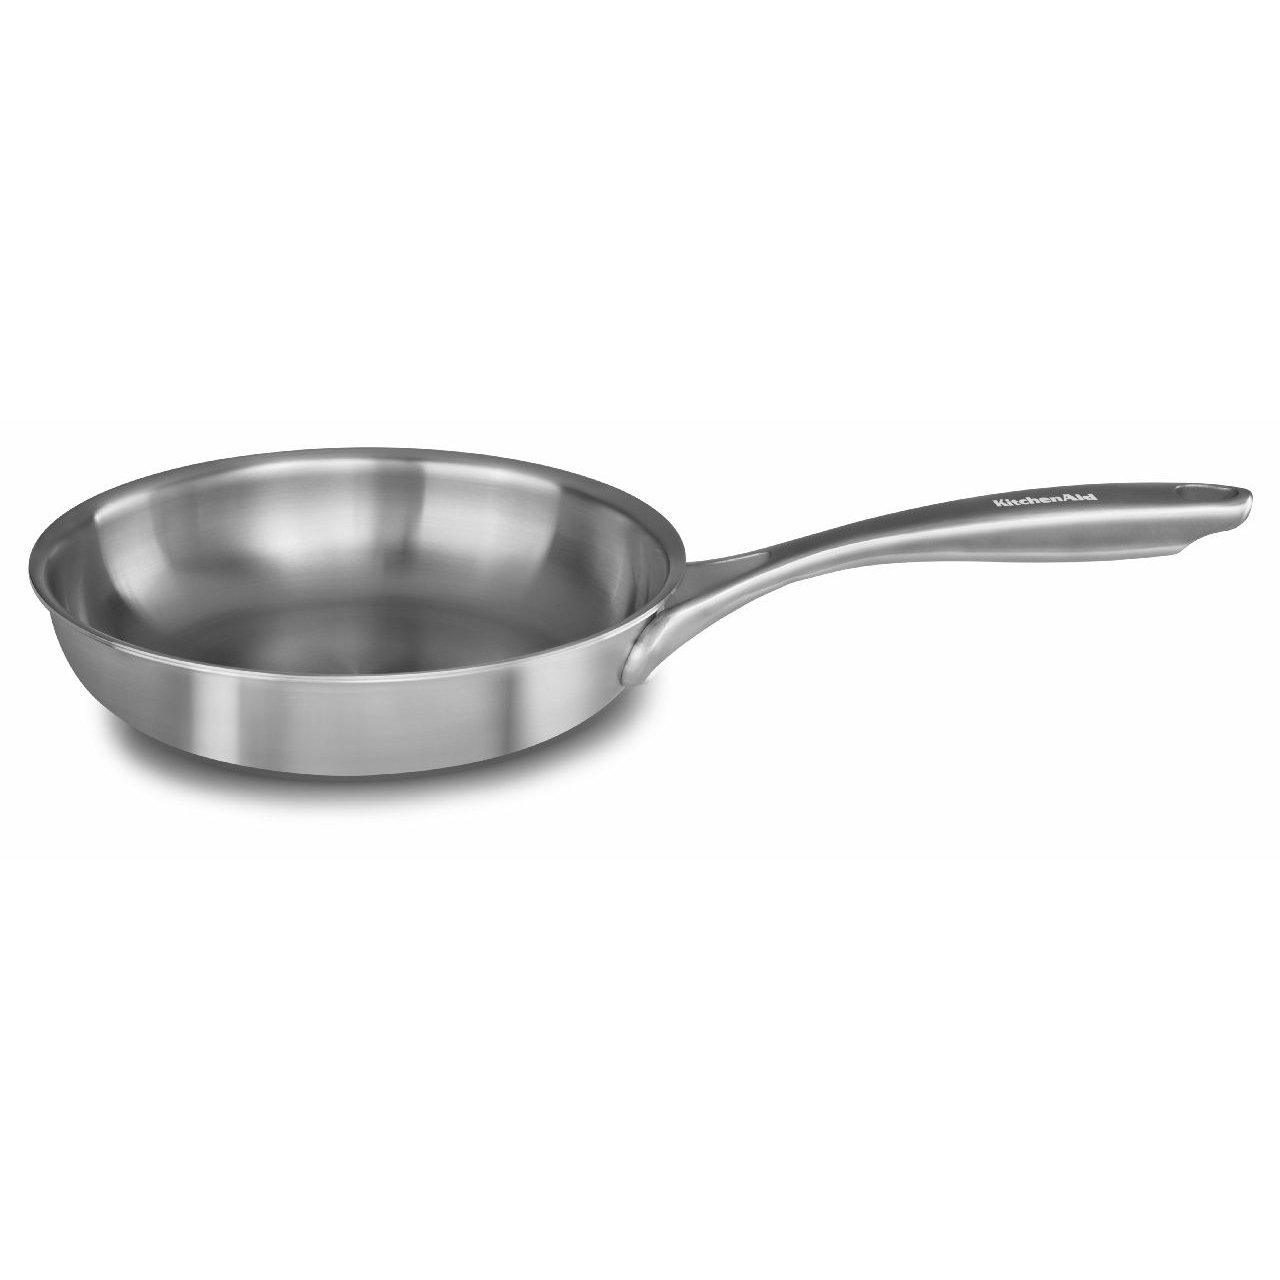 KitchenAid KCC08SKST Copper Core 8'' Skillet Cookware - Stainless Steel